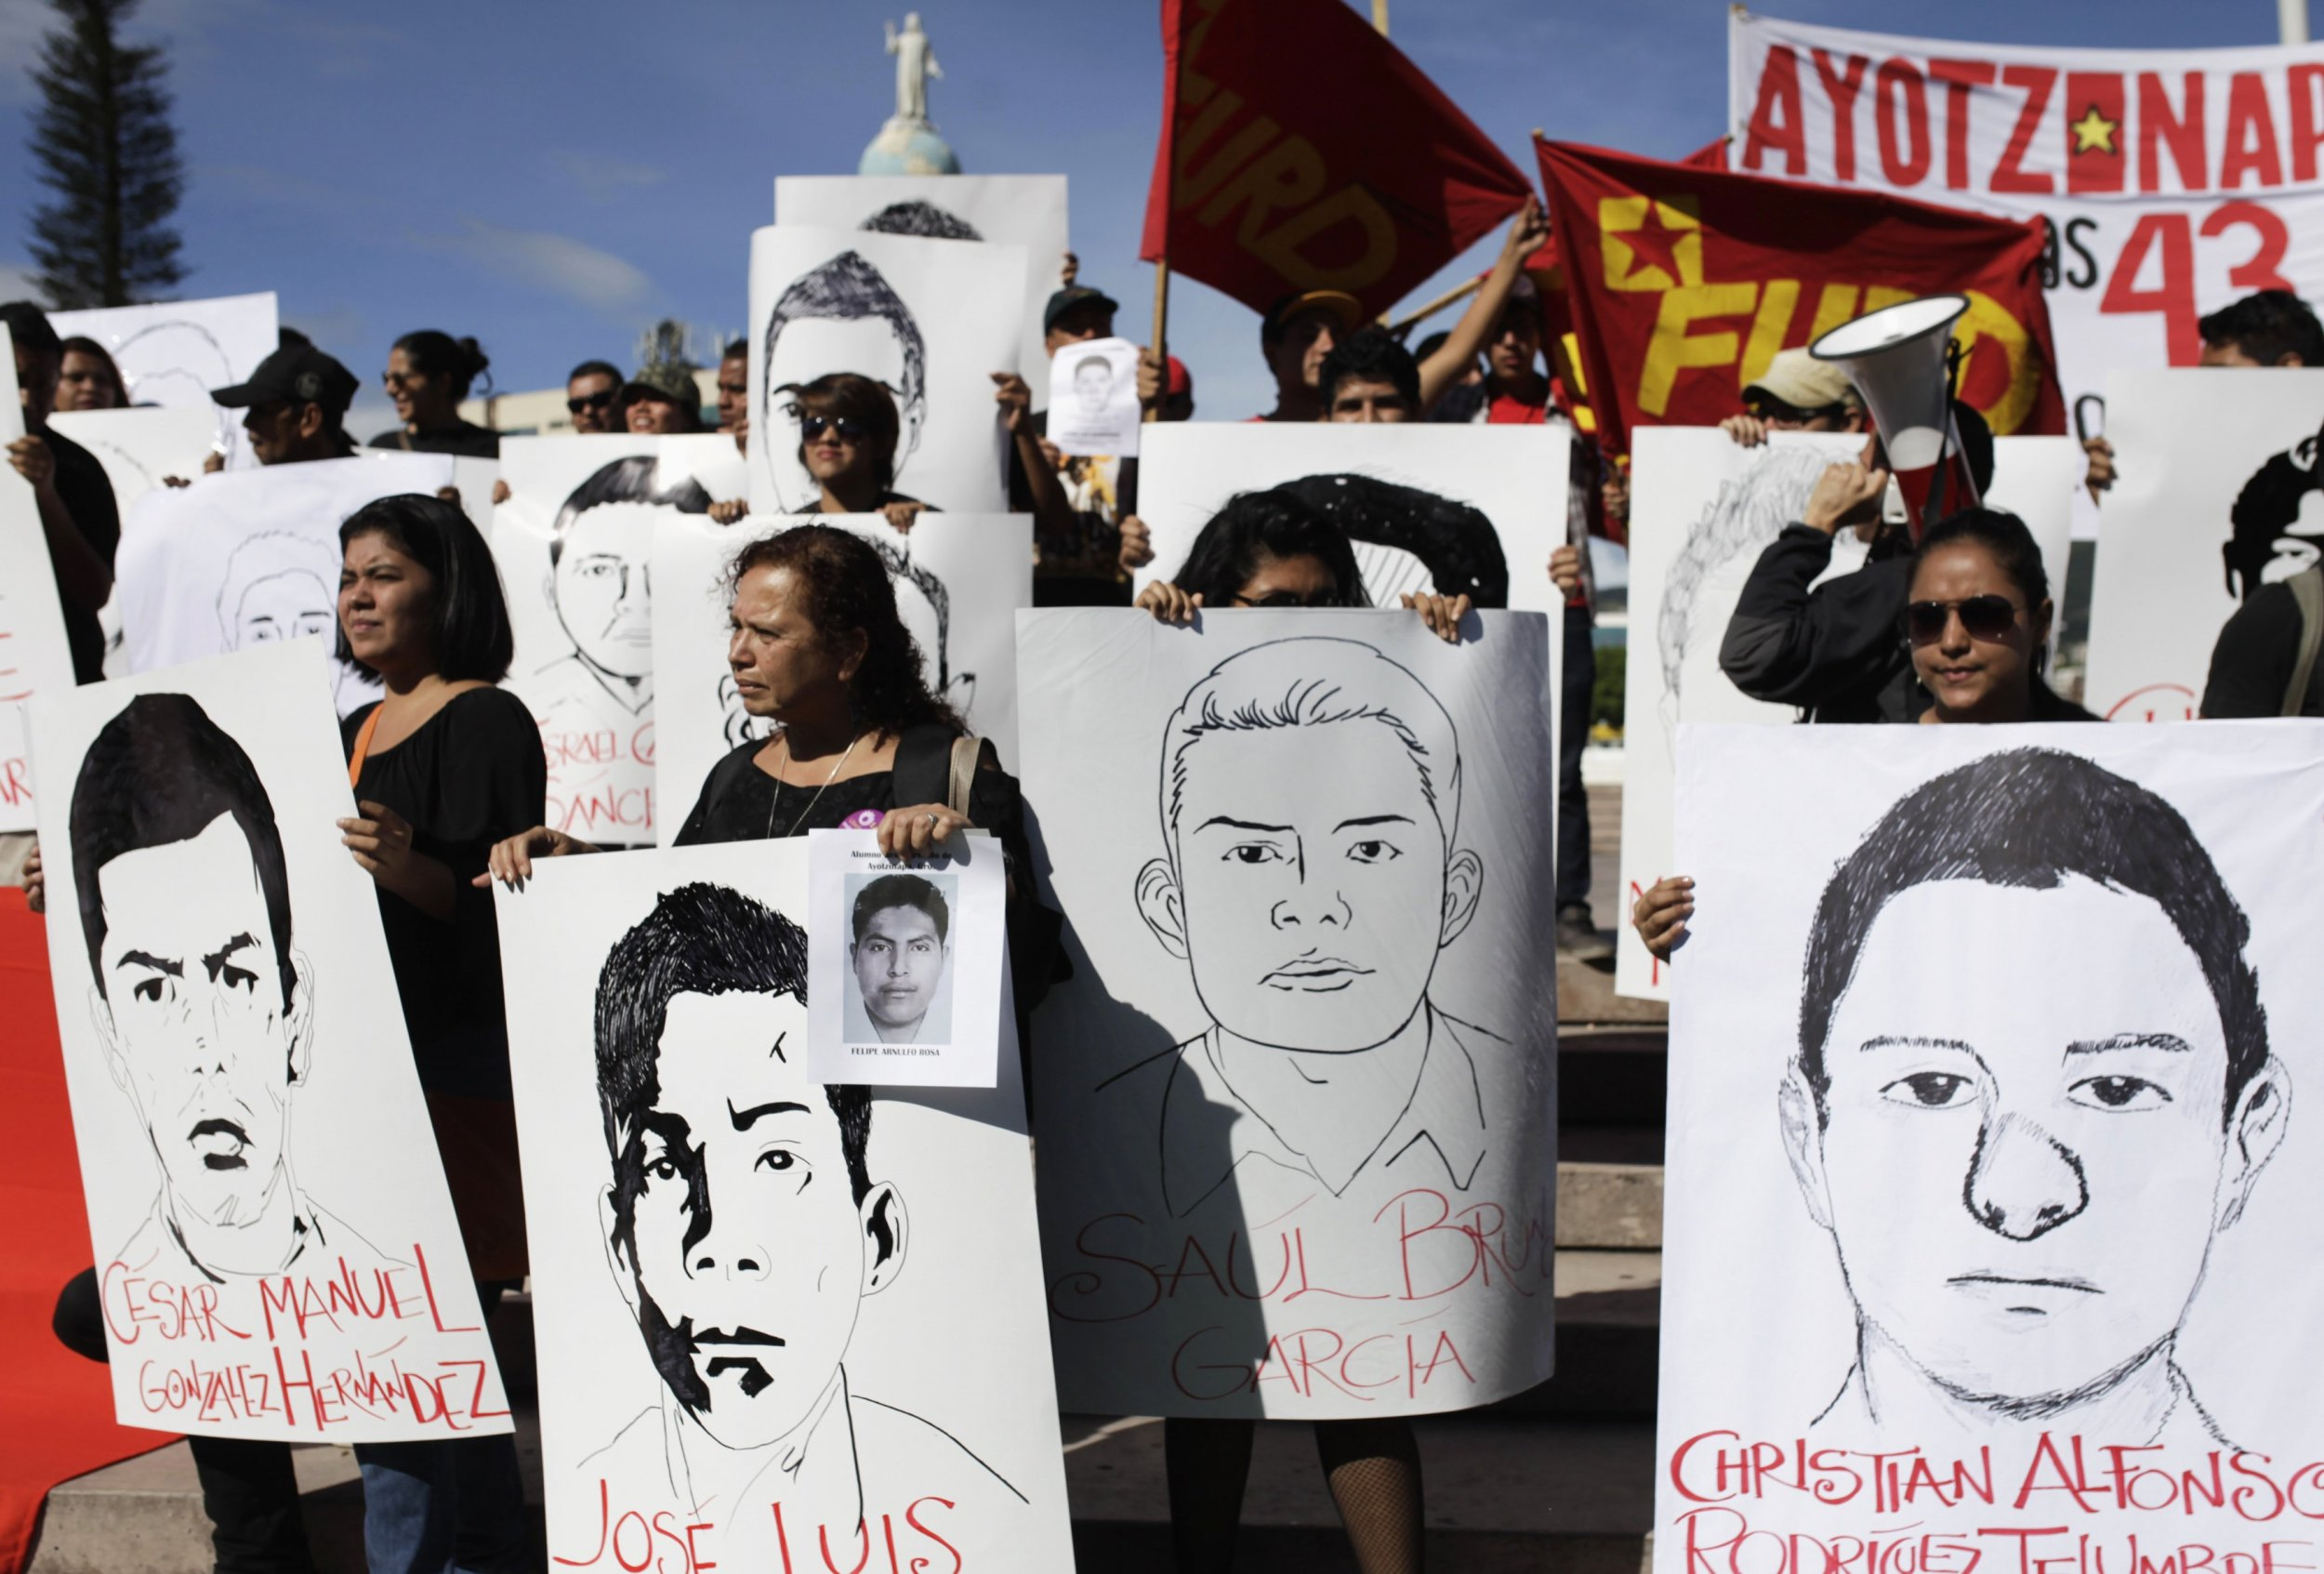 11-21-14 Mexico protests 12